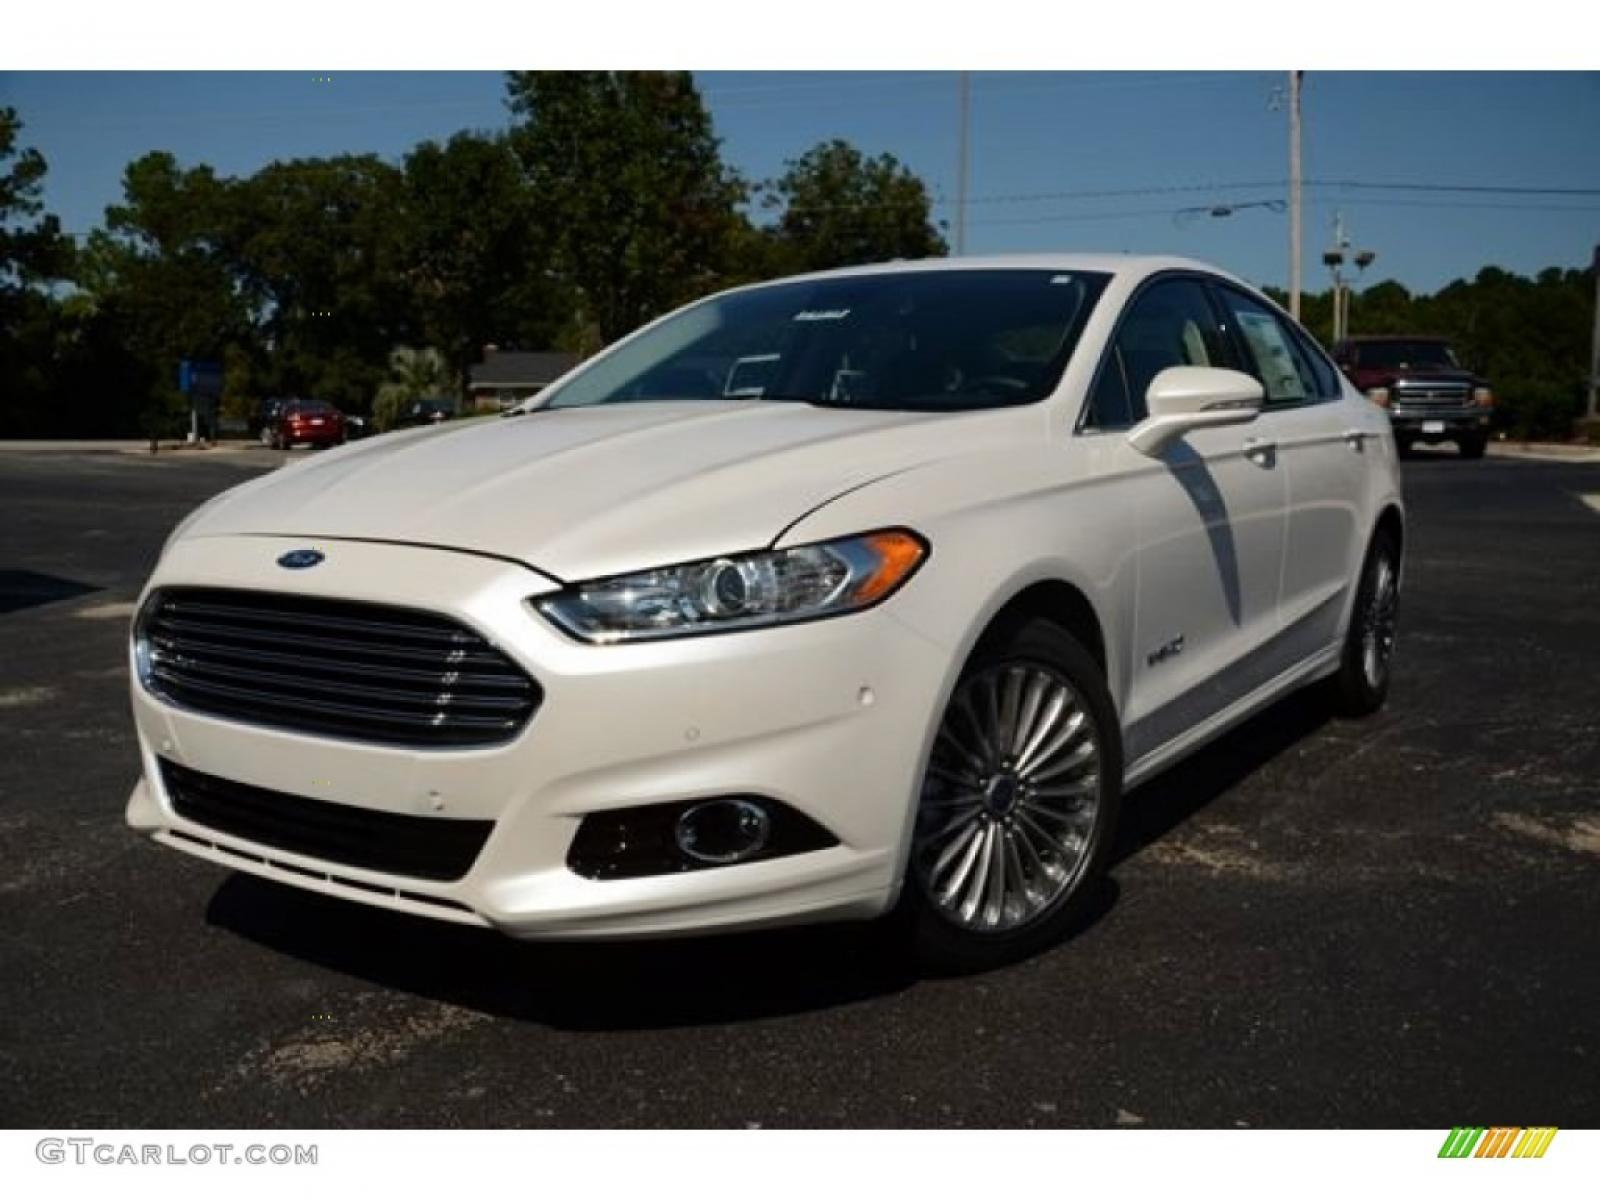 2014 ford fusion hybrid information and photos zombiedrive. Black Bedroom Furniture Sets. Home Design Ideas